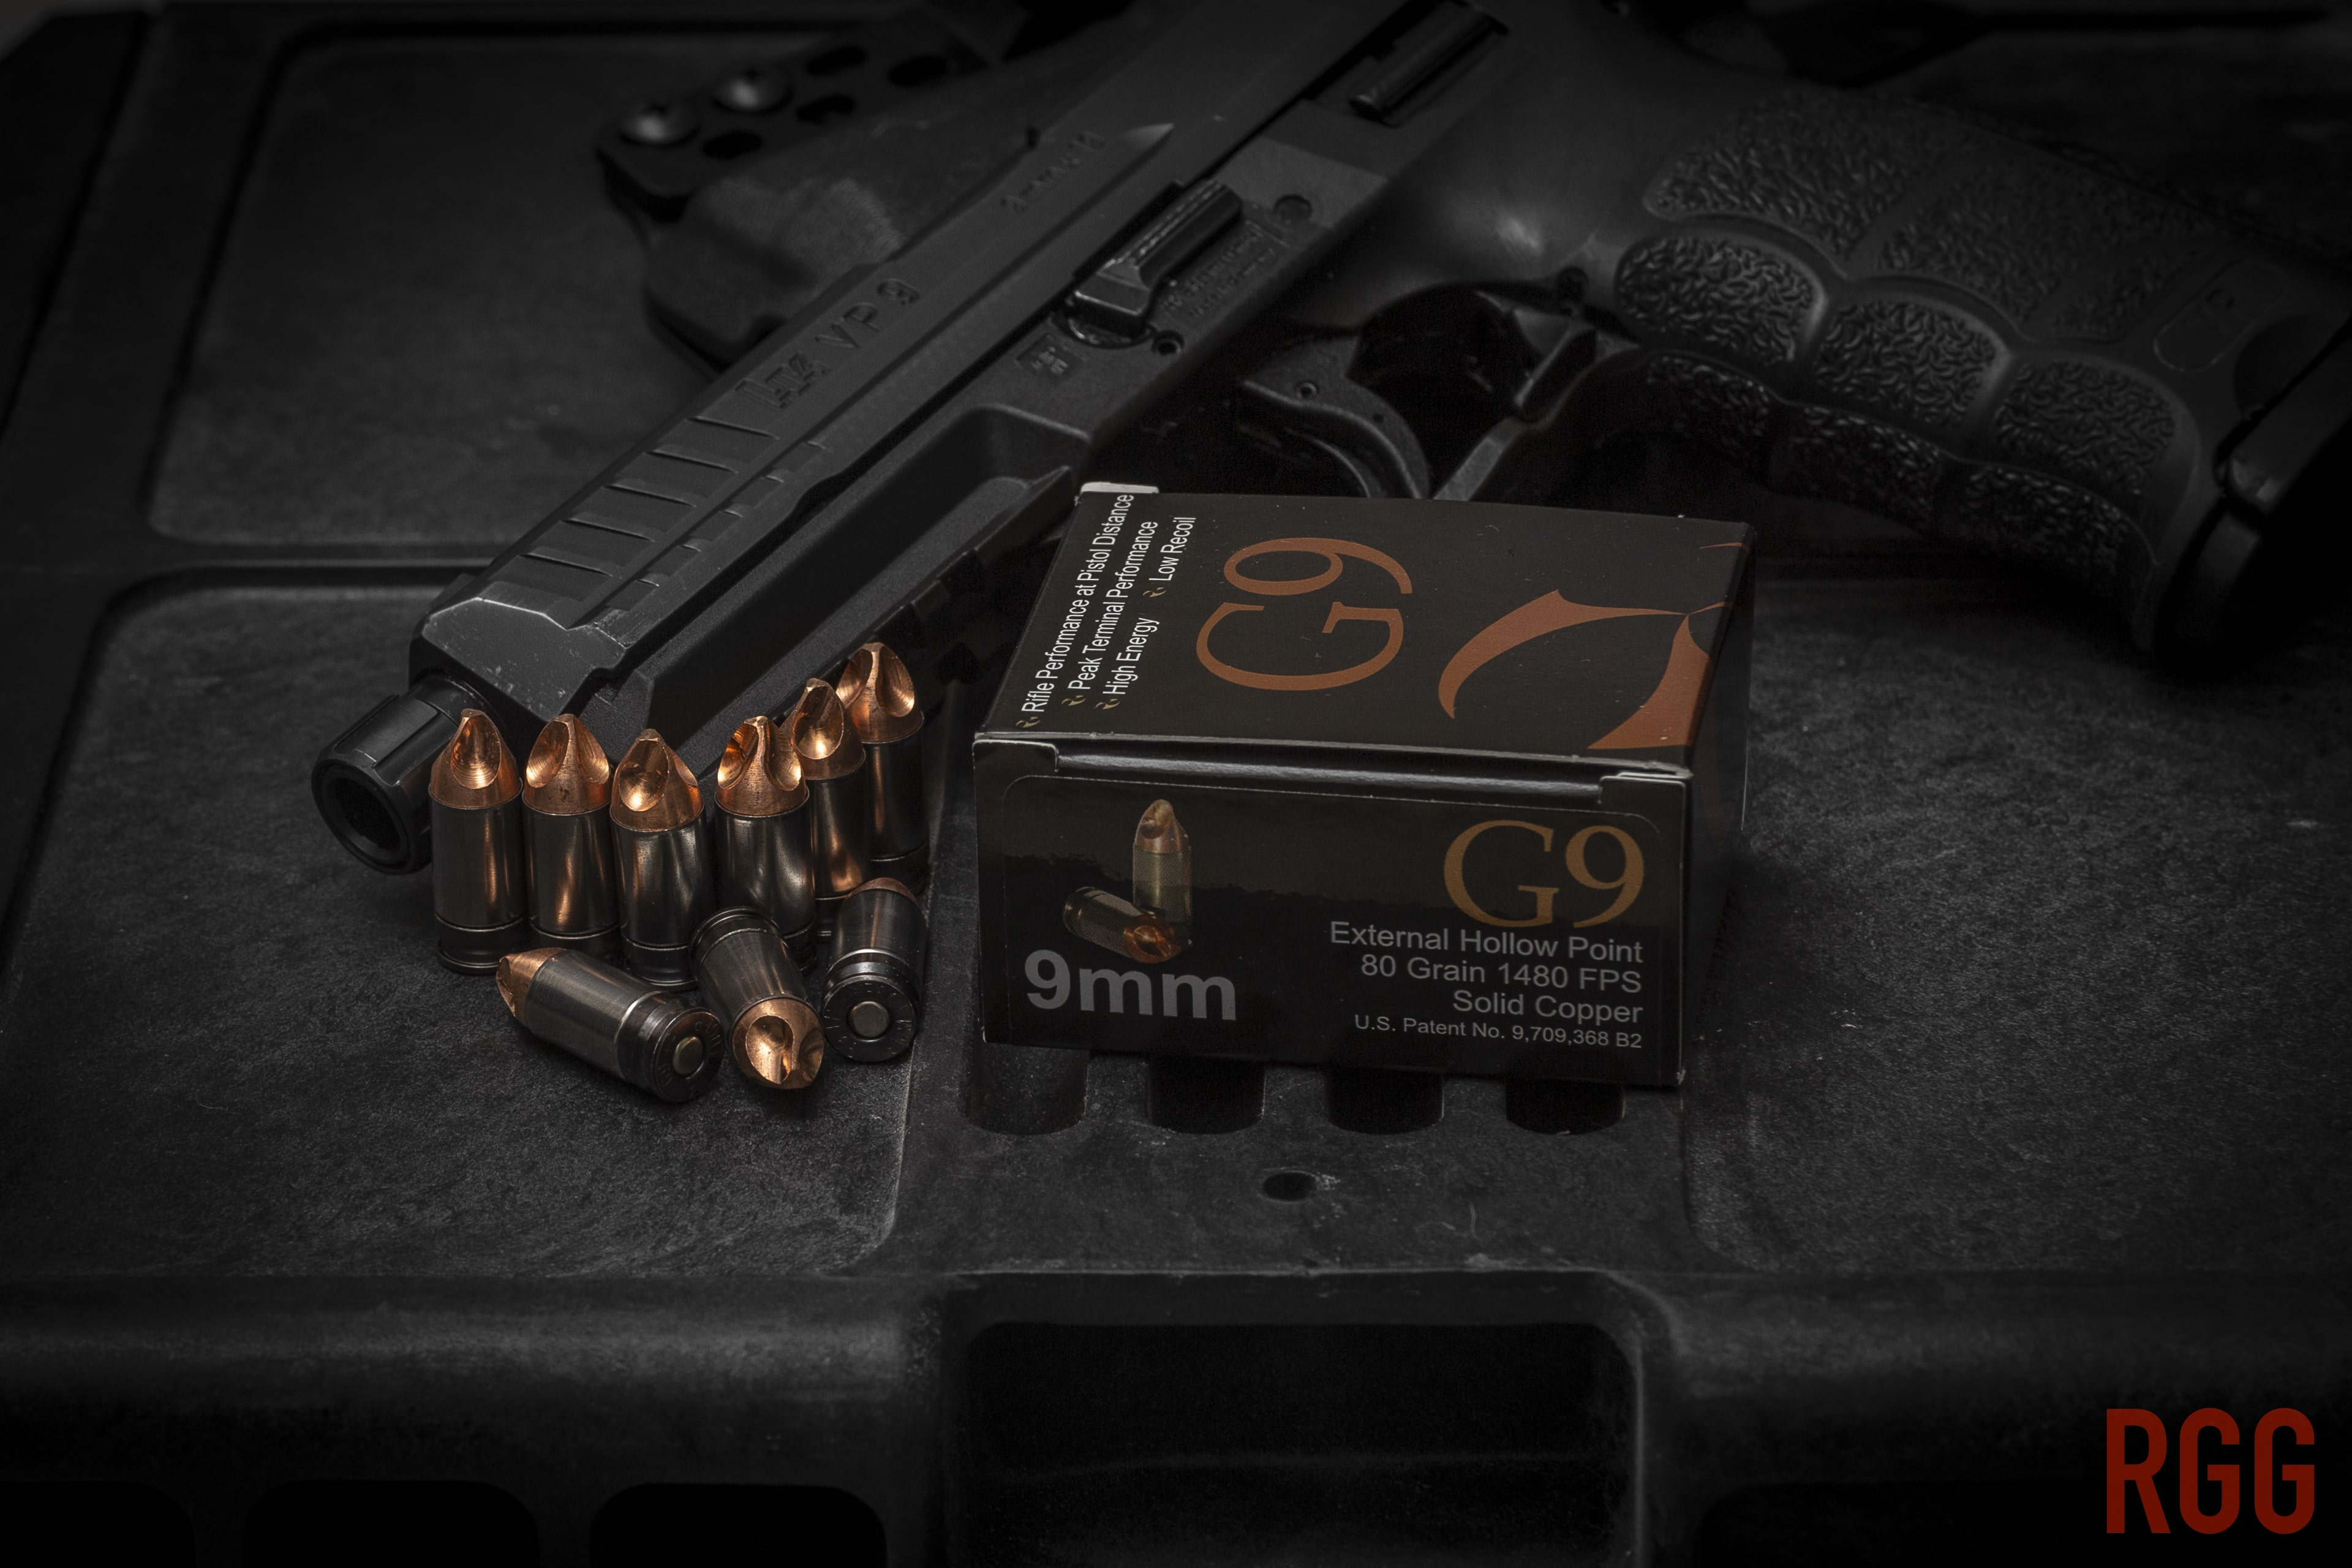 G9 Defense 9mm 80-grain +P External Hollow Point Ammunition.